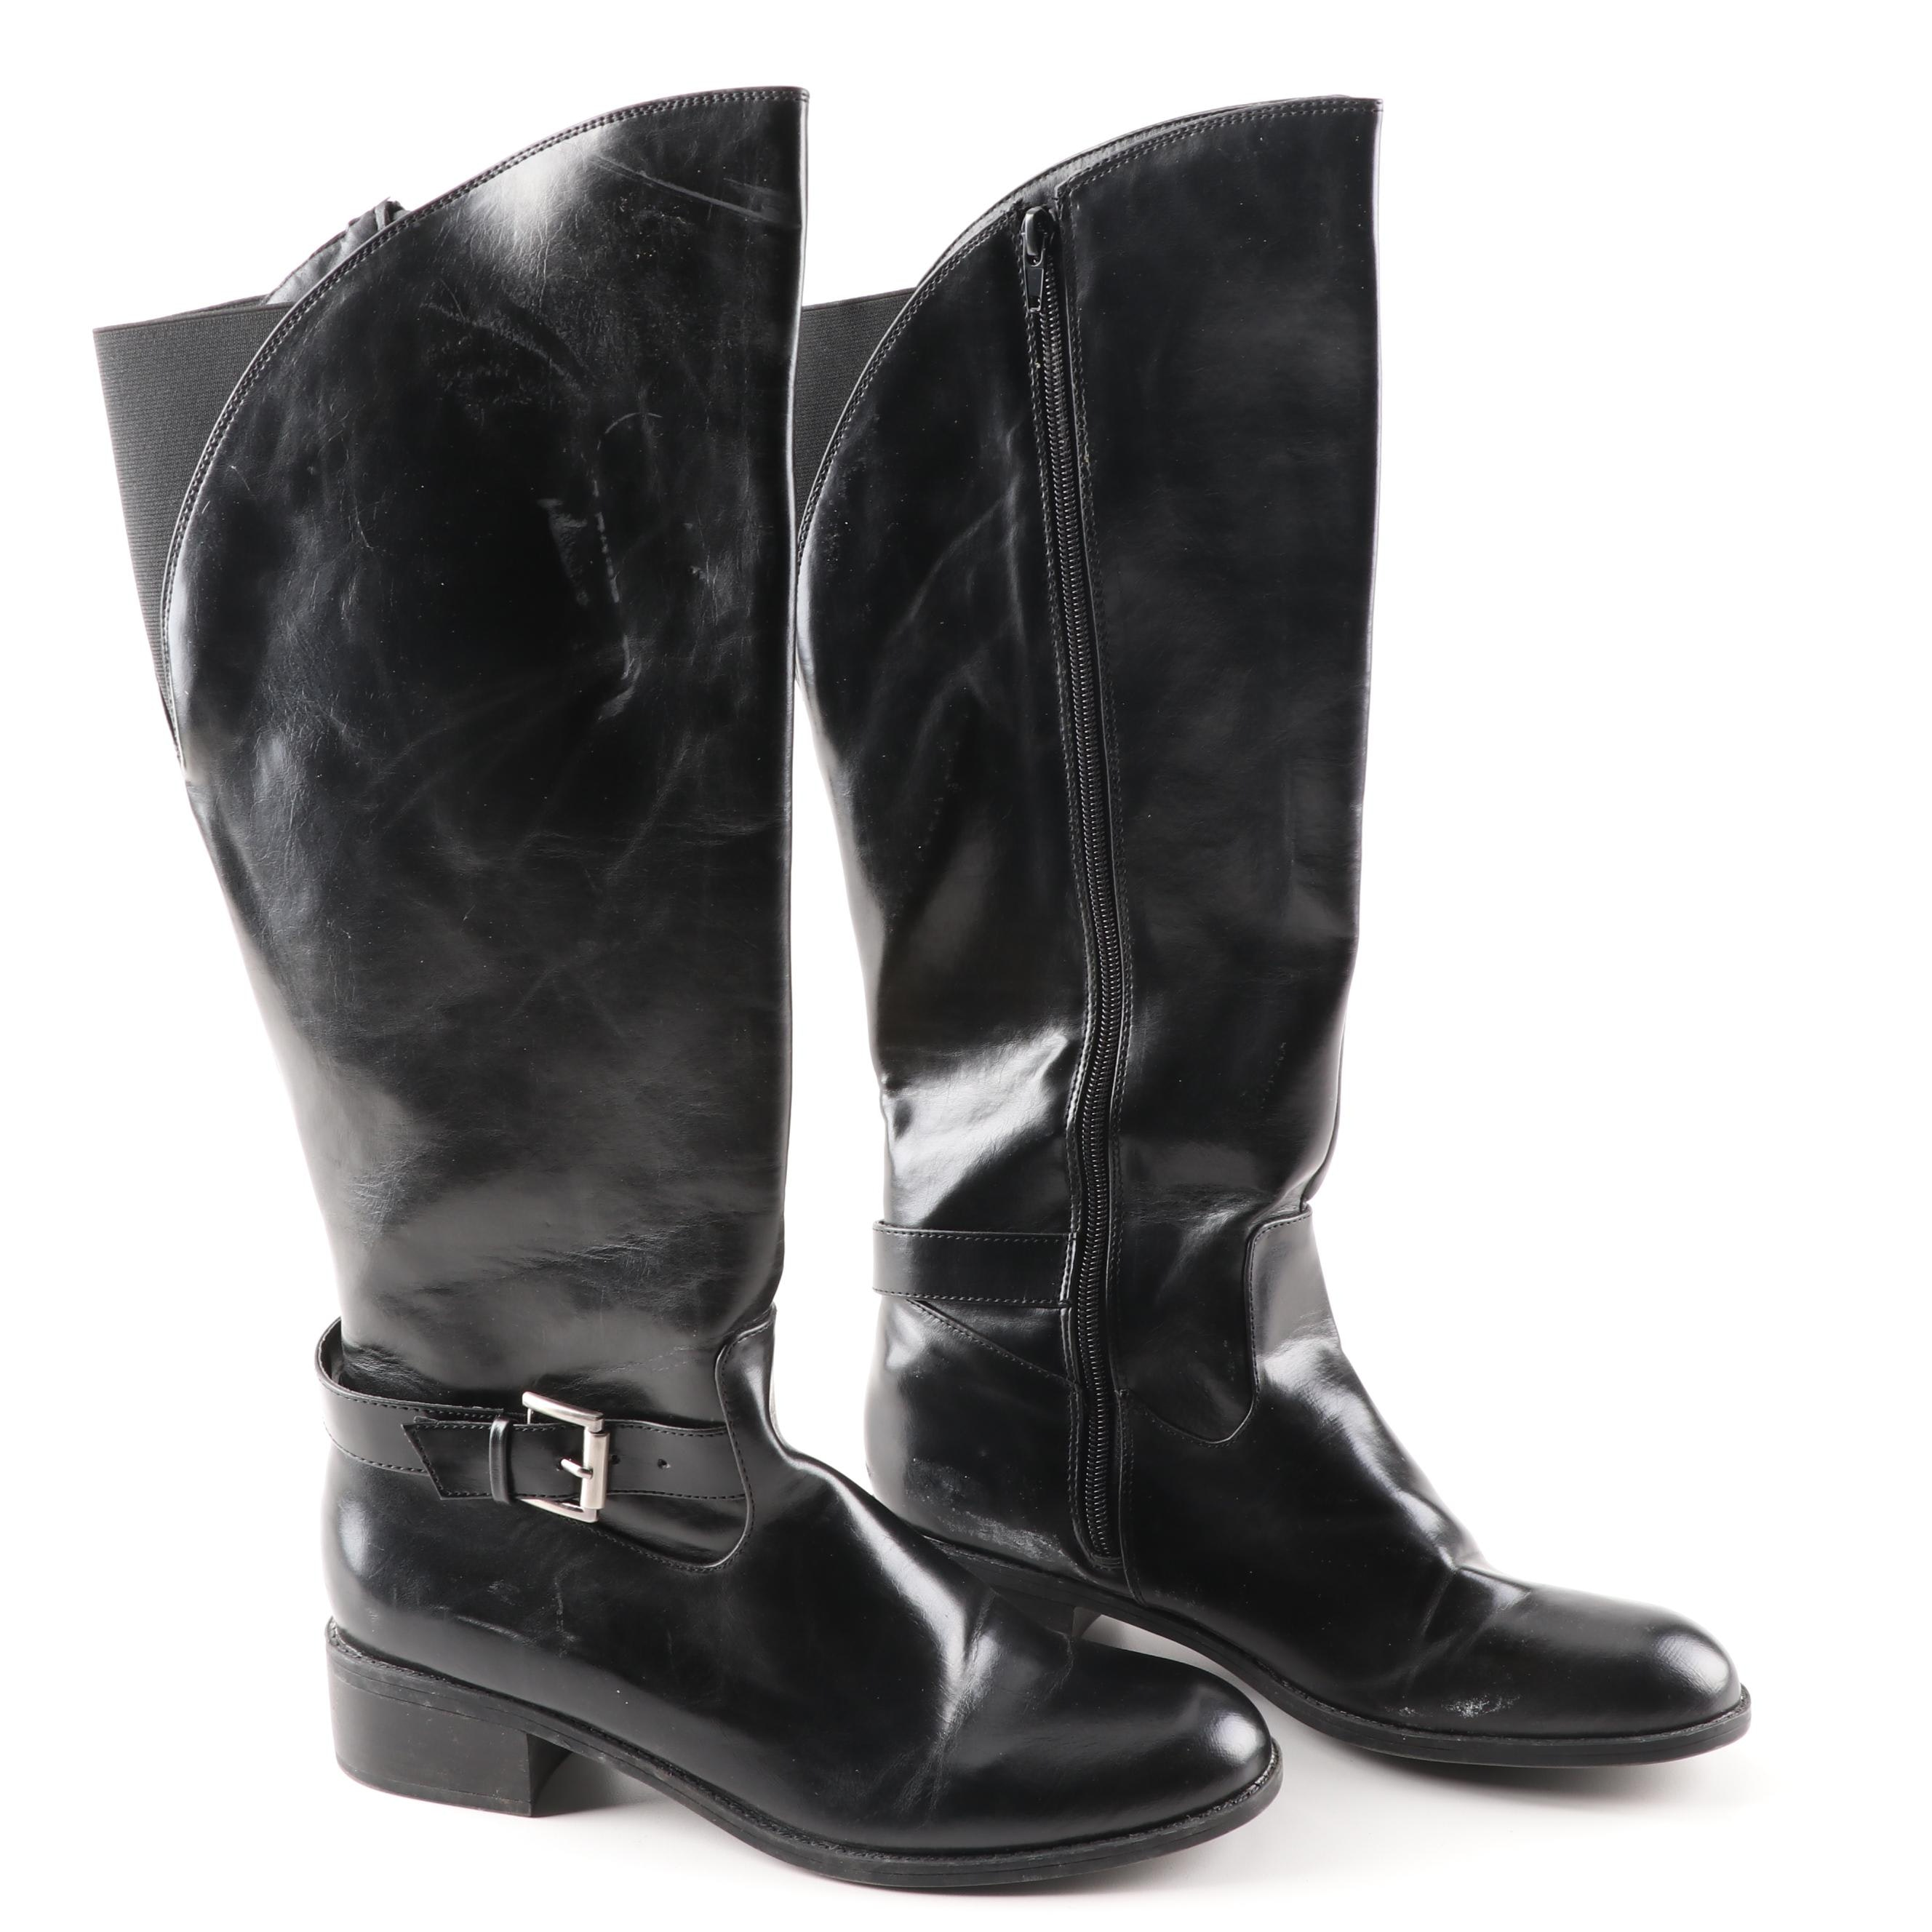 Sam & Libby Azeel Black Faux Leather Boots